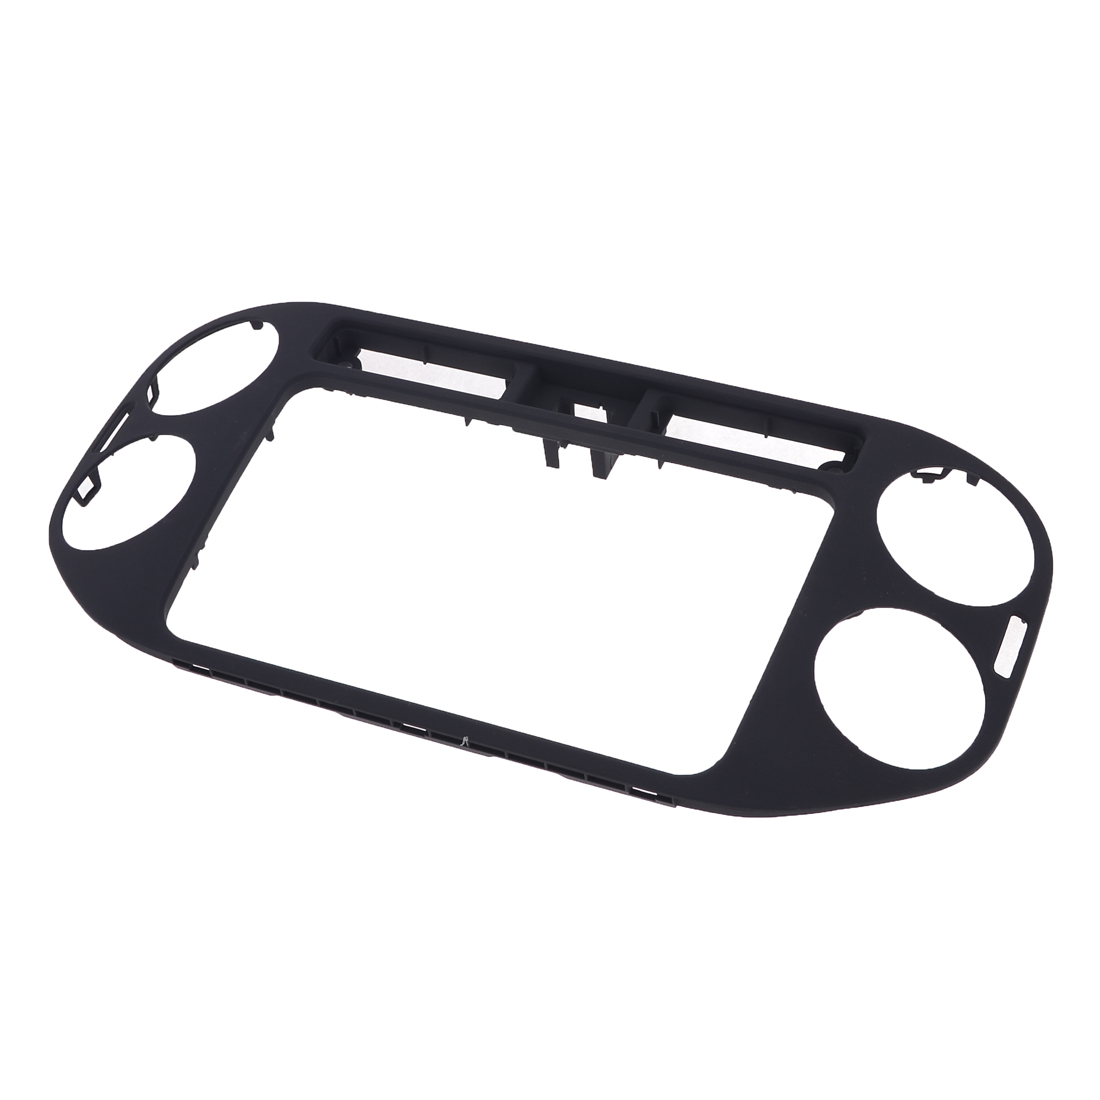 Auto Car Instrument Plastic Panel Dash Trim Bezel Black for Volkswagen